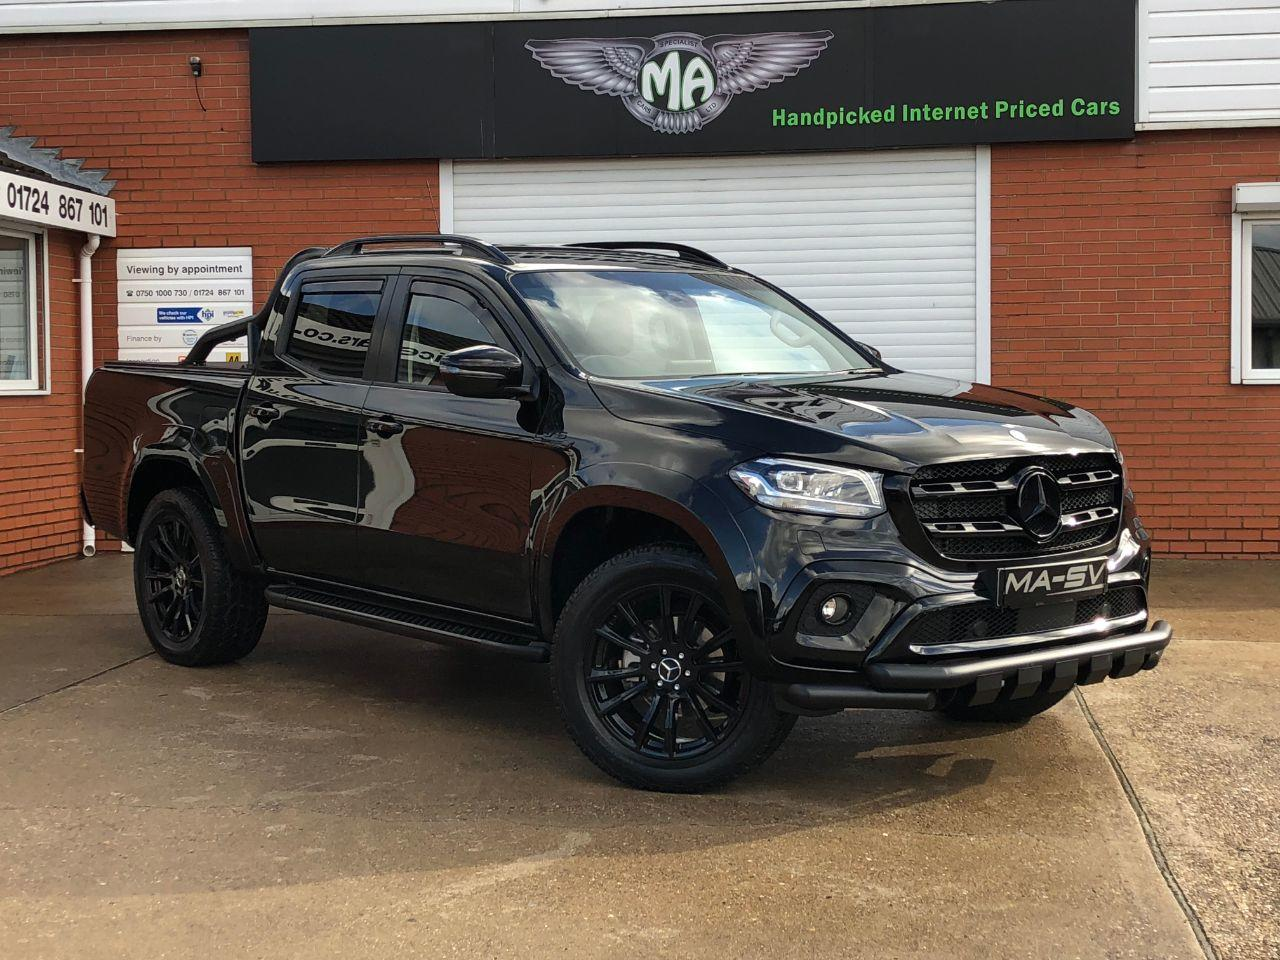 Mercedes-benz X Class X350 3.0 V6 4Matic Power Automatic Double Cab Pick Up Diesel Kabana Black